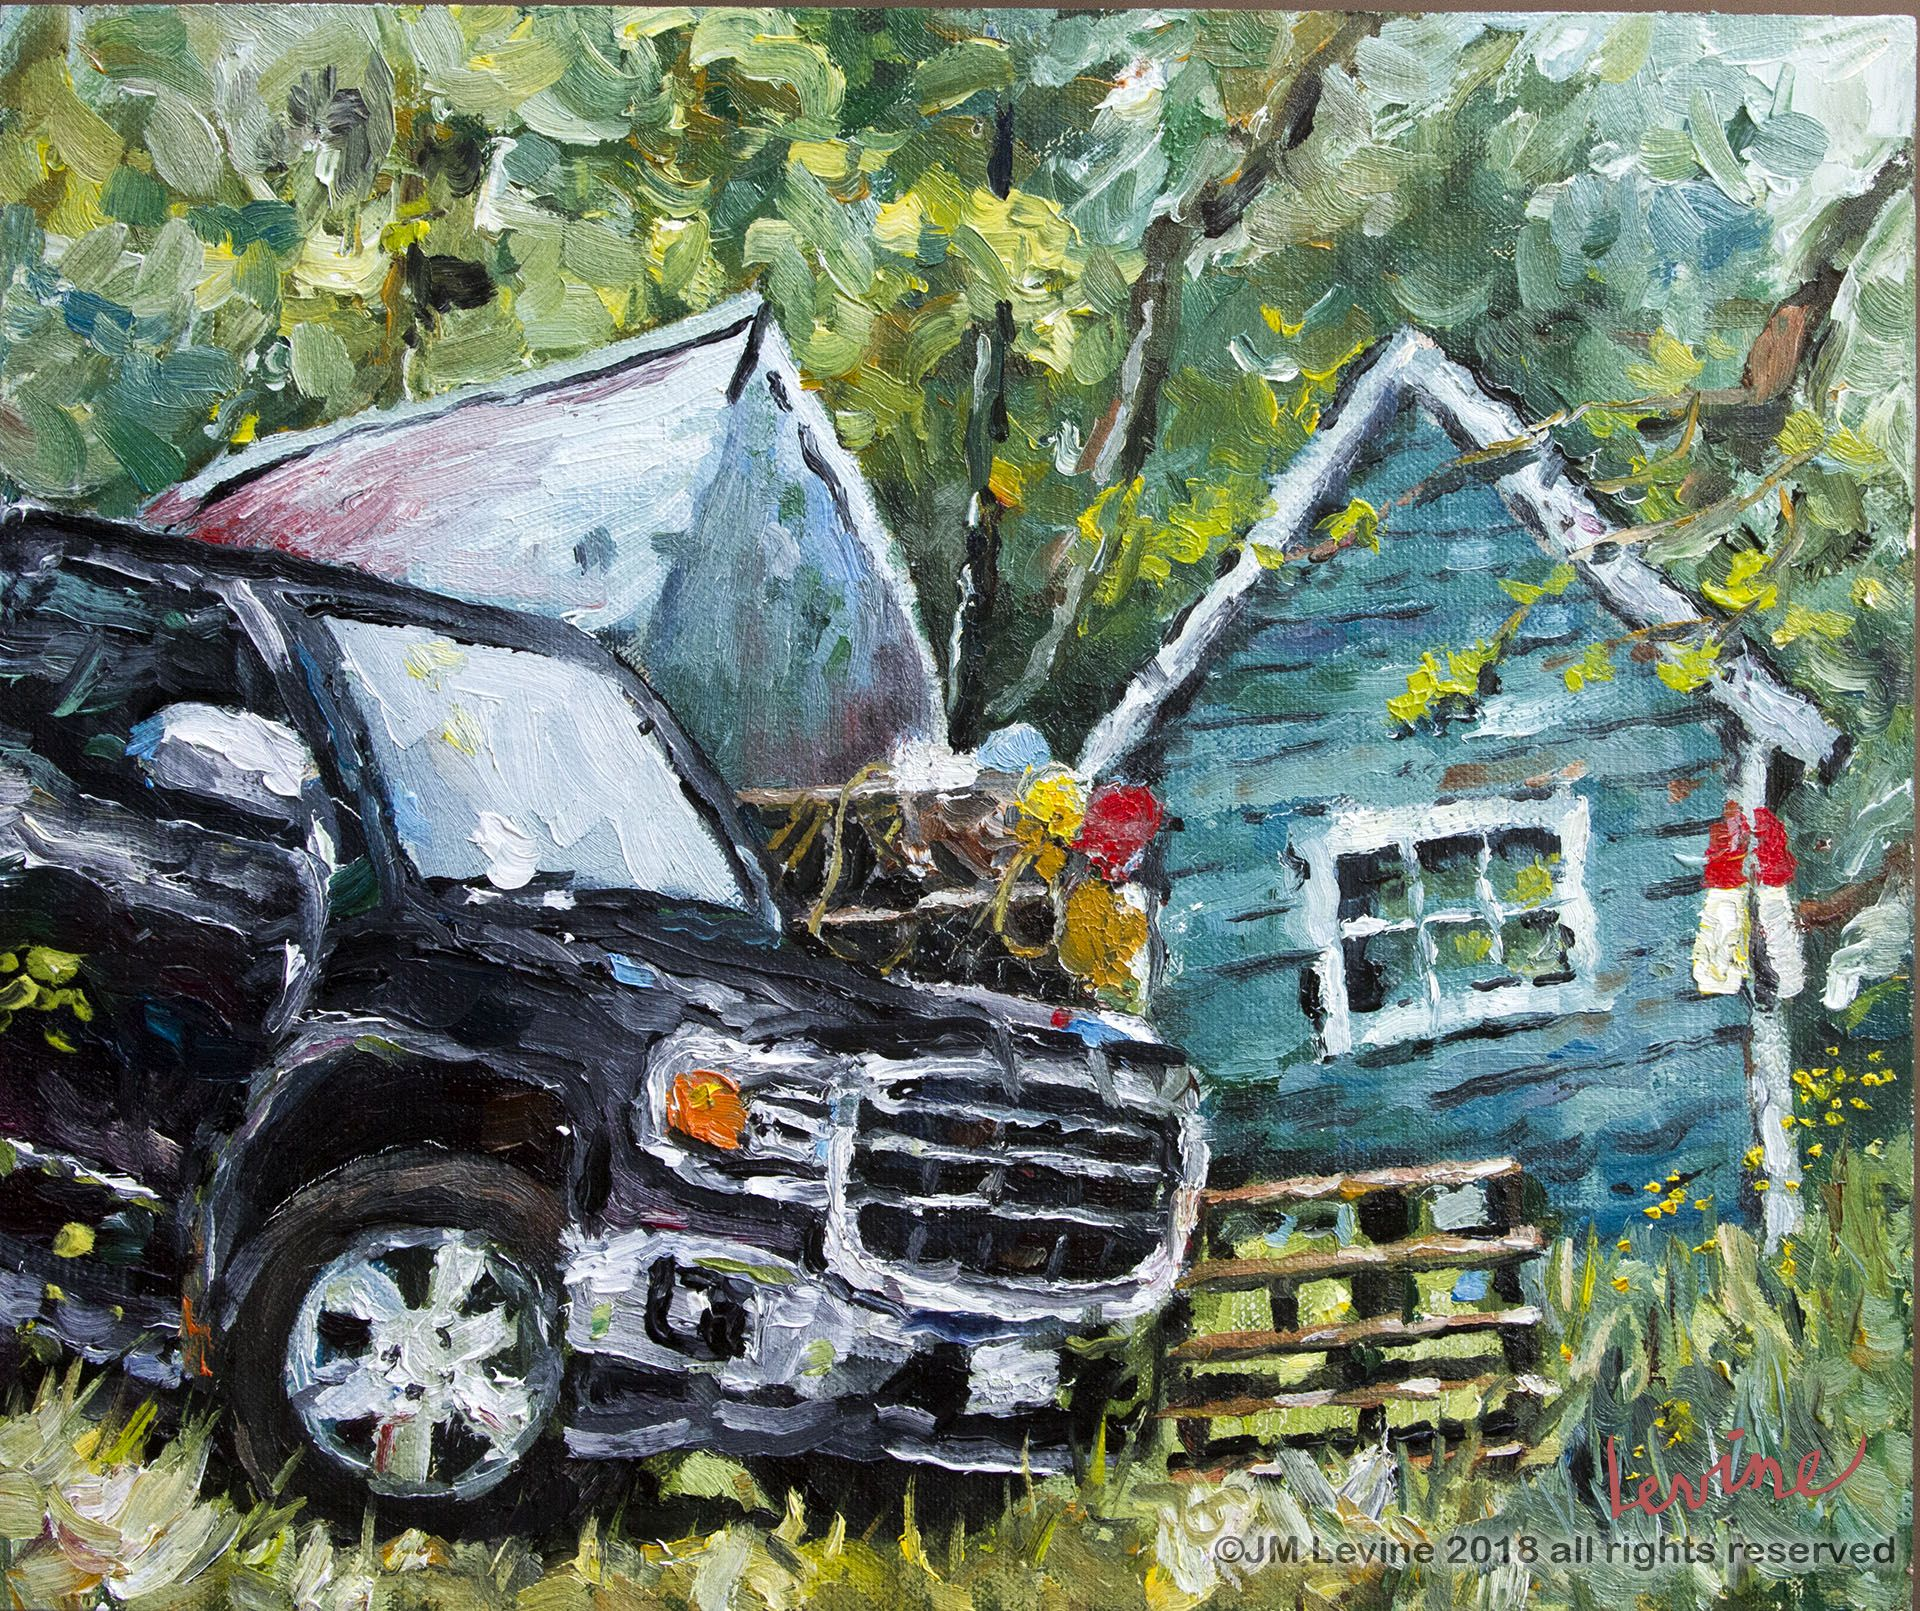 Plein air painting in Maine (With images) Plein air